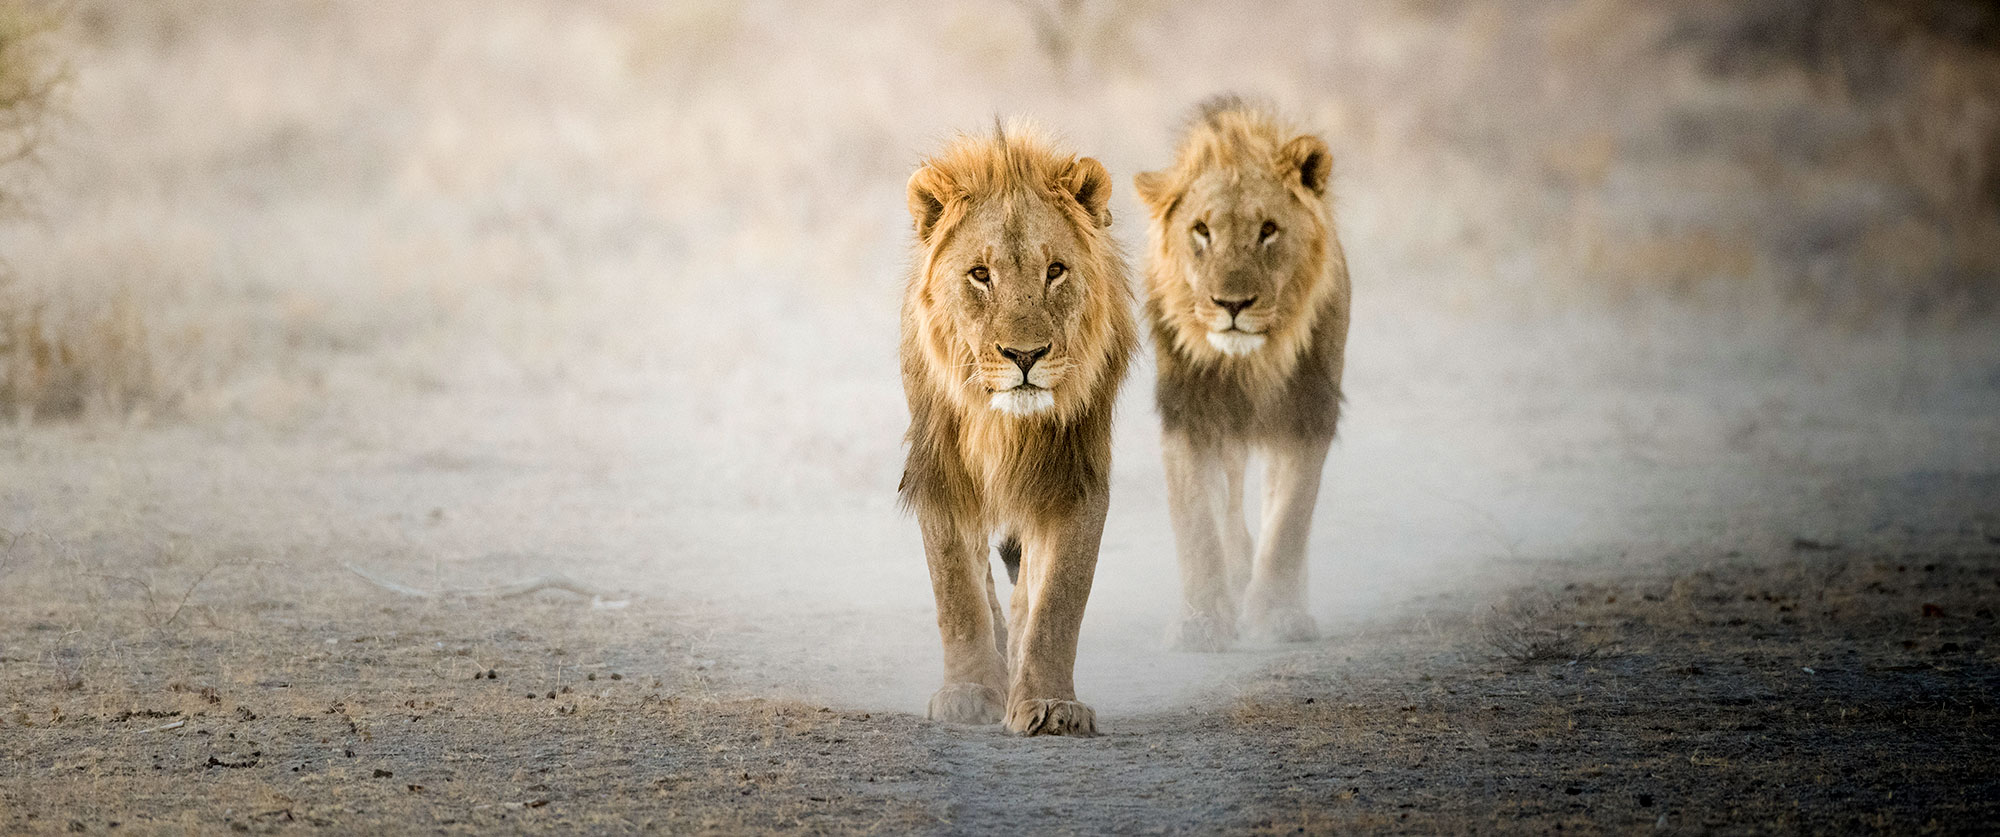 Lions in Etosha National Park - Ongava Lodge, Namibia